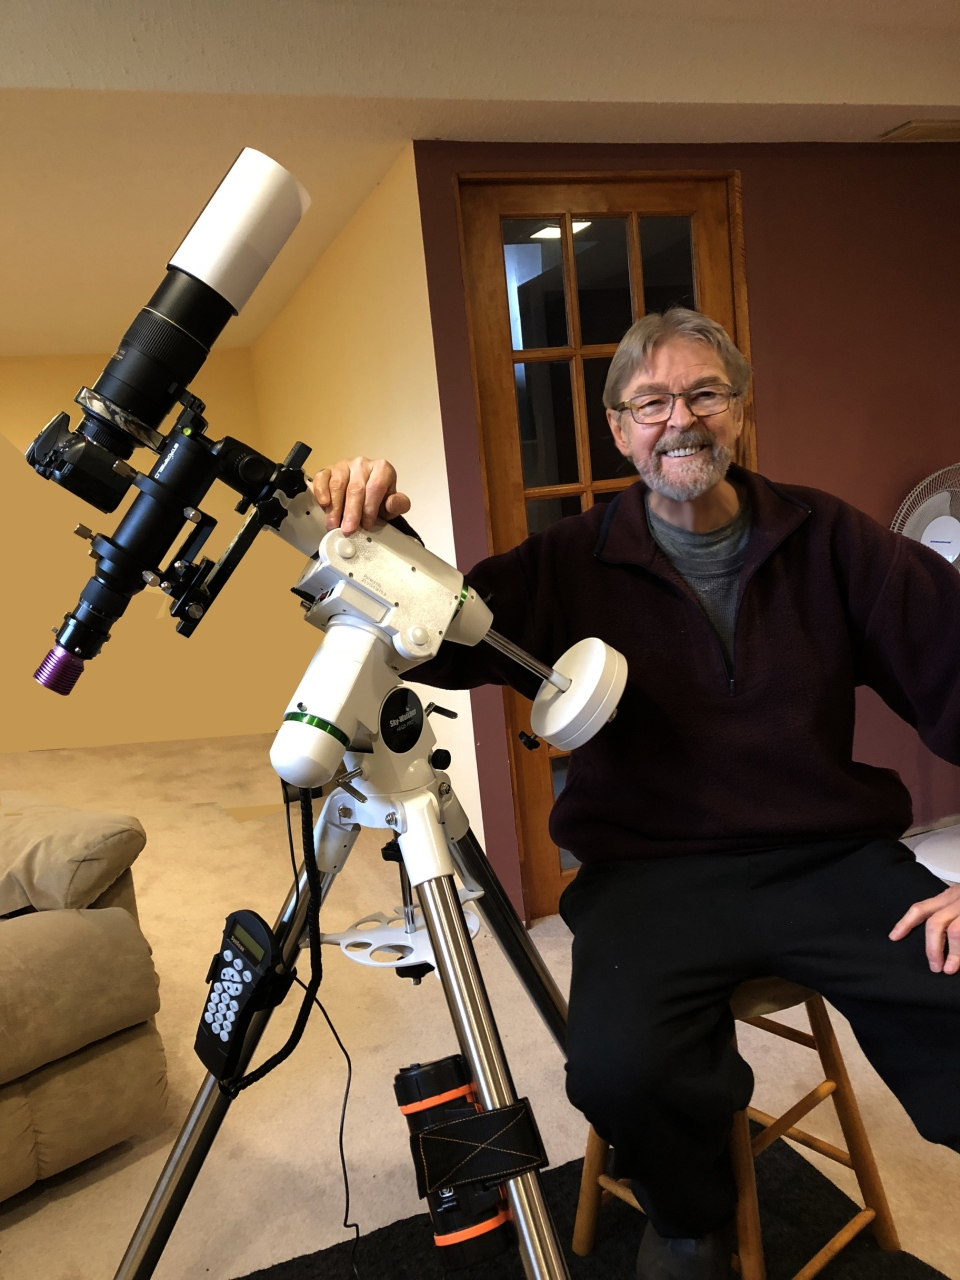 Rudy Pohl used to use his own equipment to photograph the stars, but had to sell his cameras and telescopes when chronic illness made it impossible for him to continue. In this photo, he poses with his Sky-Watcher HEQ5 Pro equatorial mount. (Rudy Kohl)